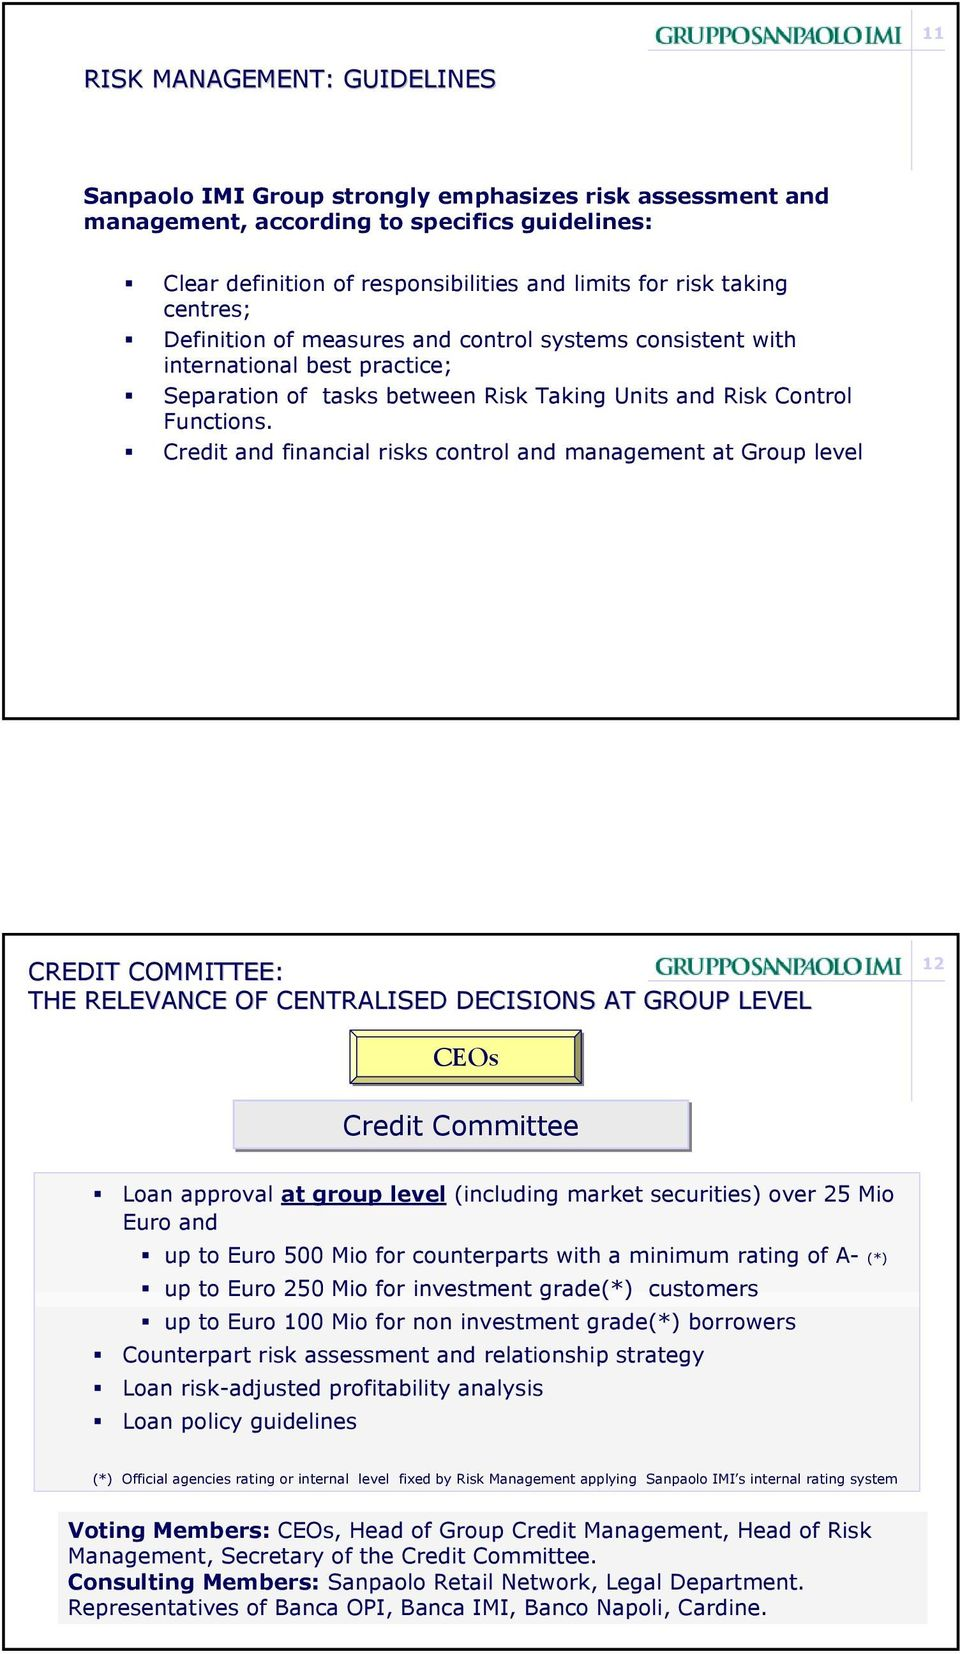 Credit and financial risks control and management at Group level CREDIT COMMITTEE: THE RELEVANCE OF CENTRALISED DECISIONS AT GROUP LEVEL 12 CEOs Credit Committee Loan approval at group level